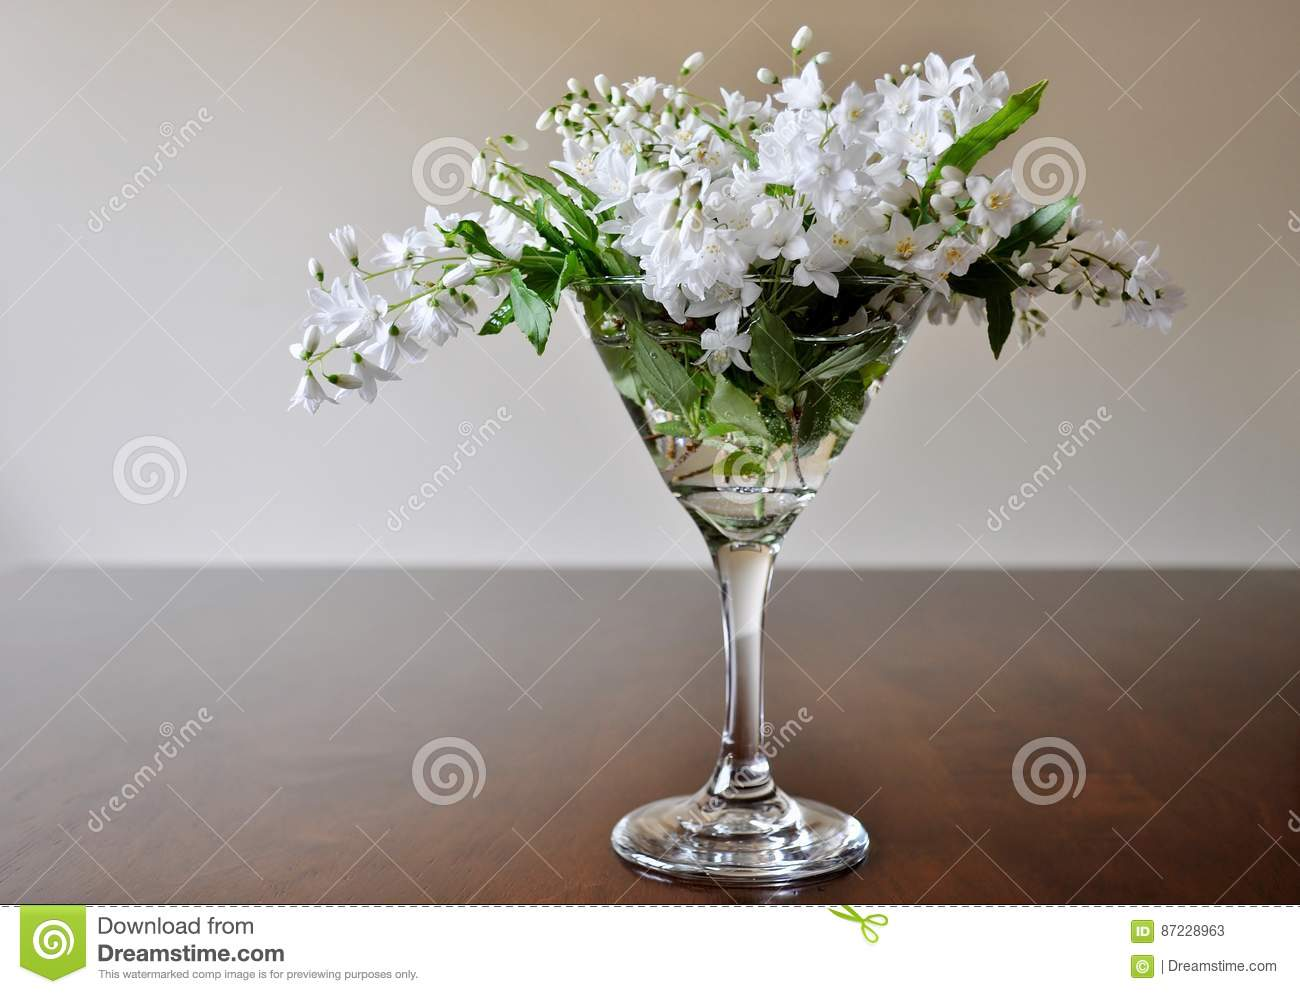 Bouquet Of White Flowers In Martini Glass. Stock Image - Image of ...